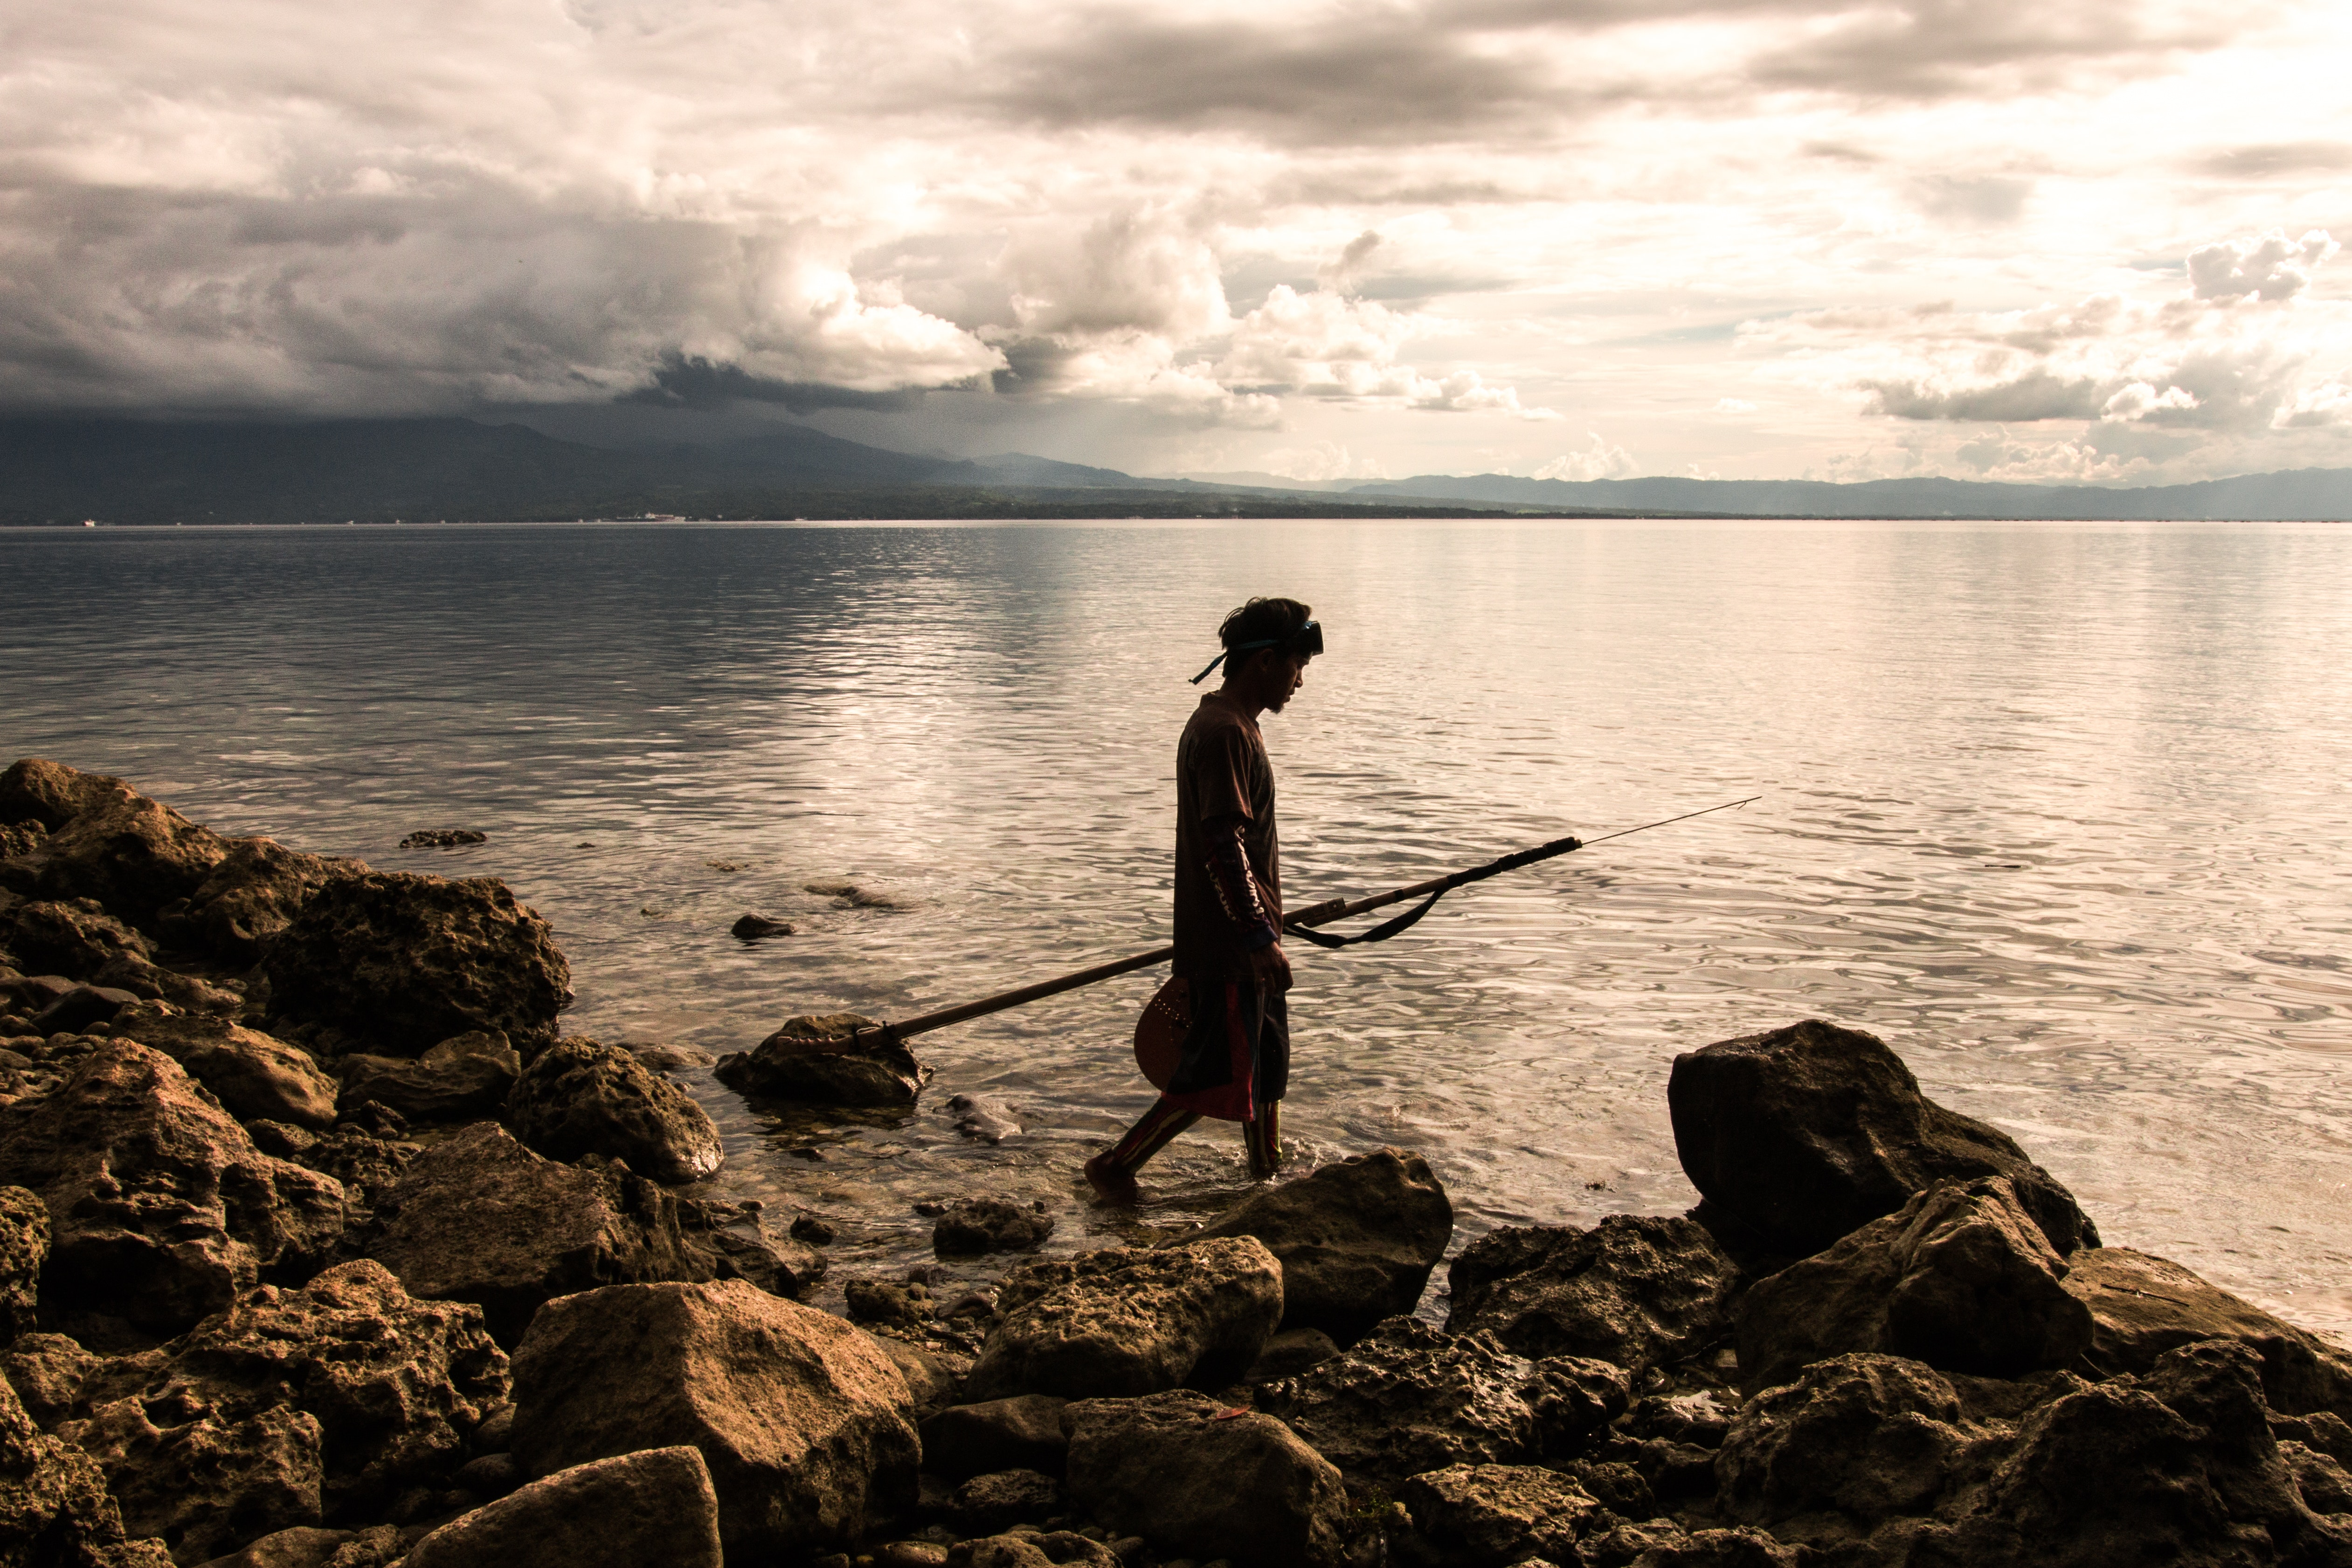 Person holding spear beside body of water photo